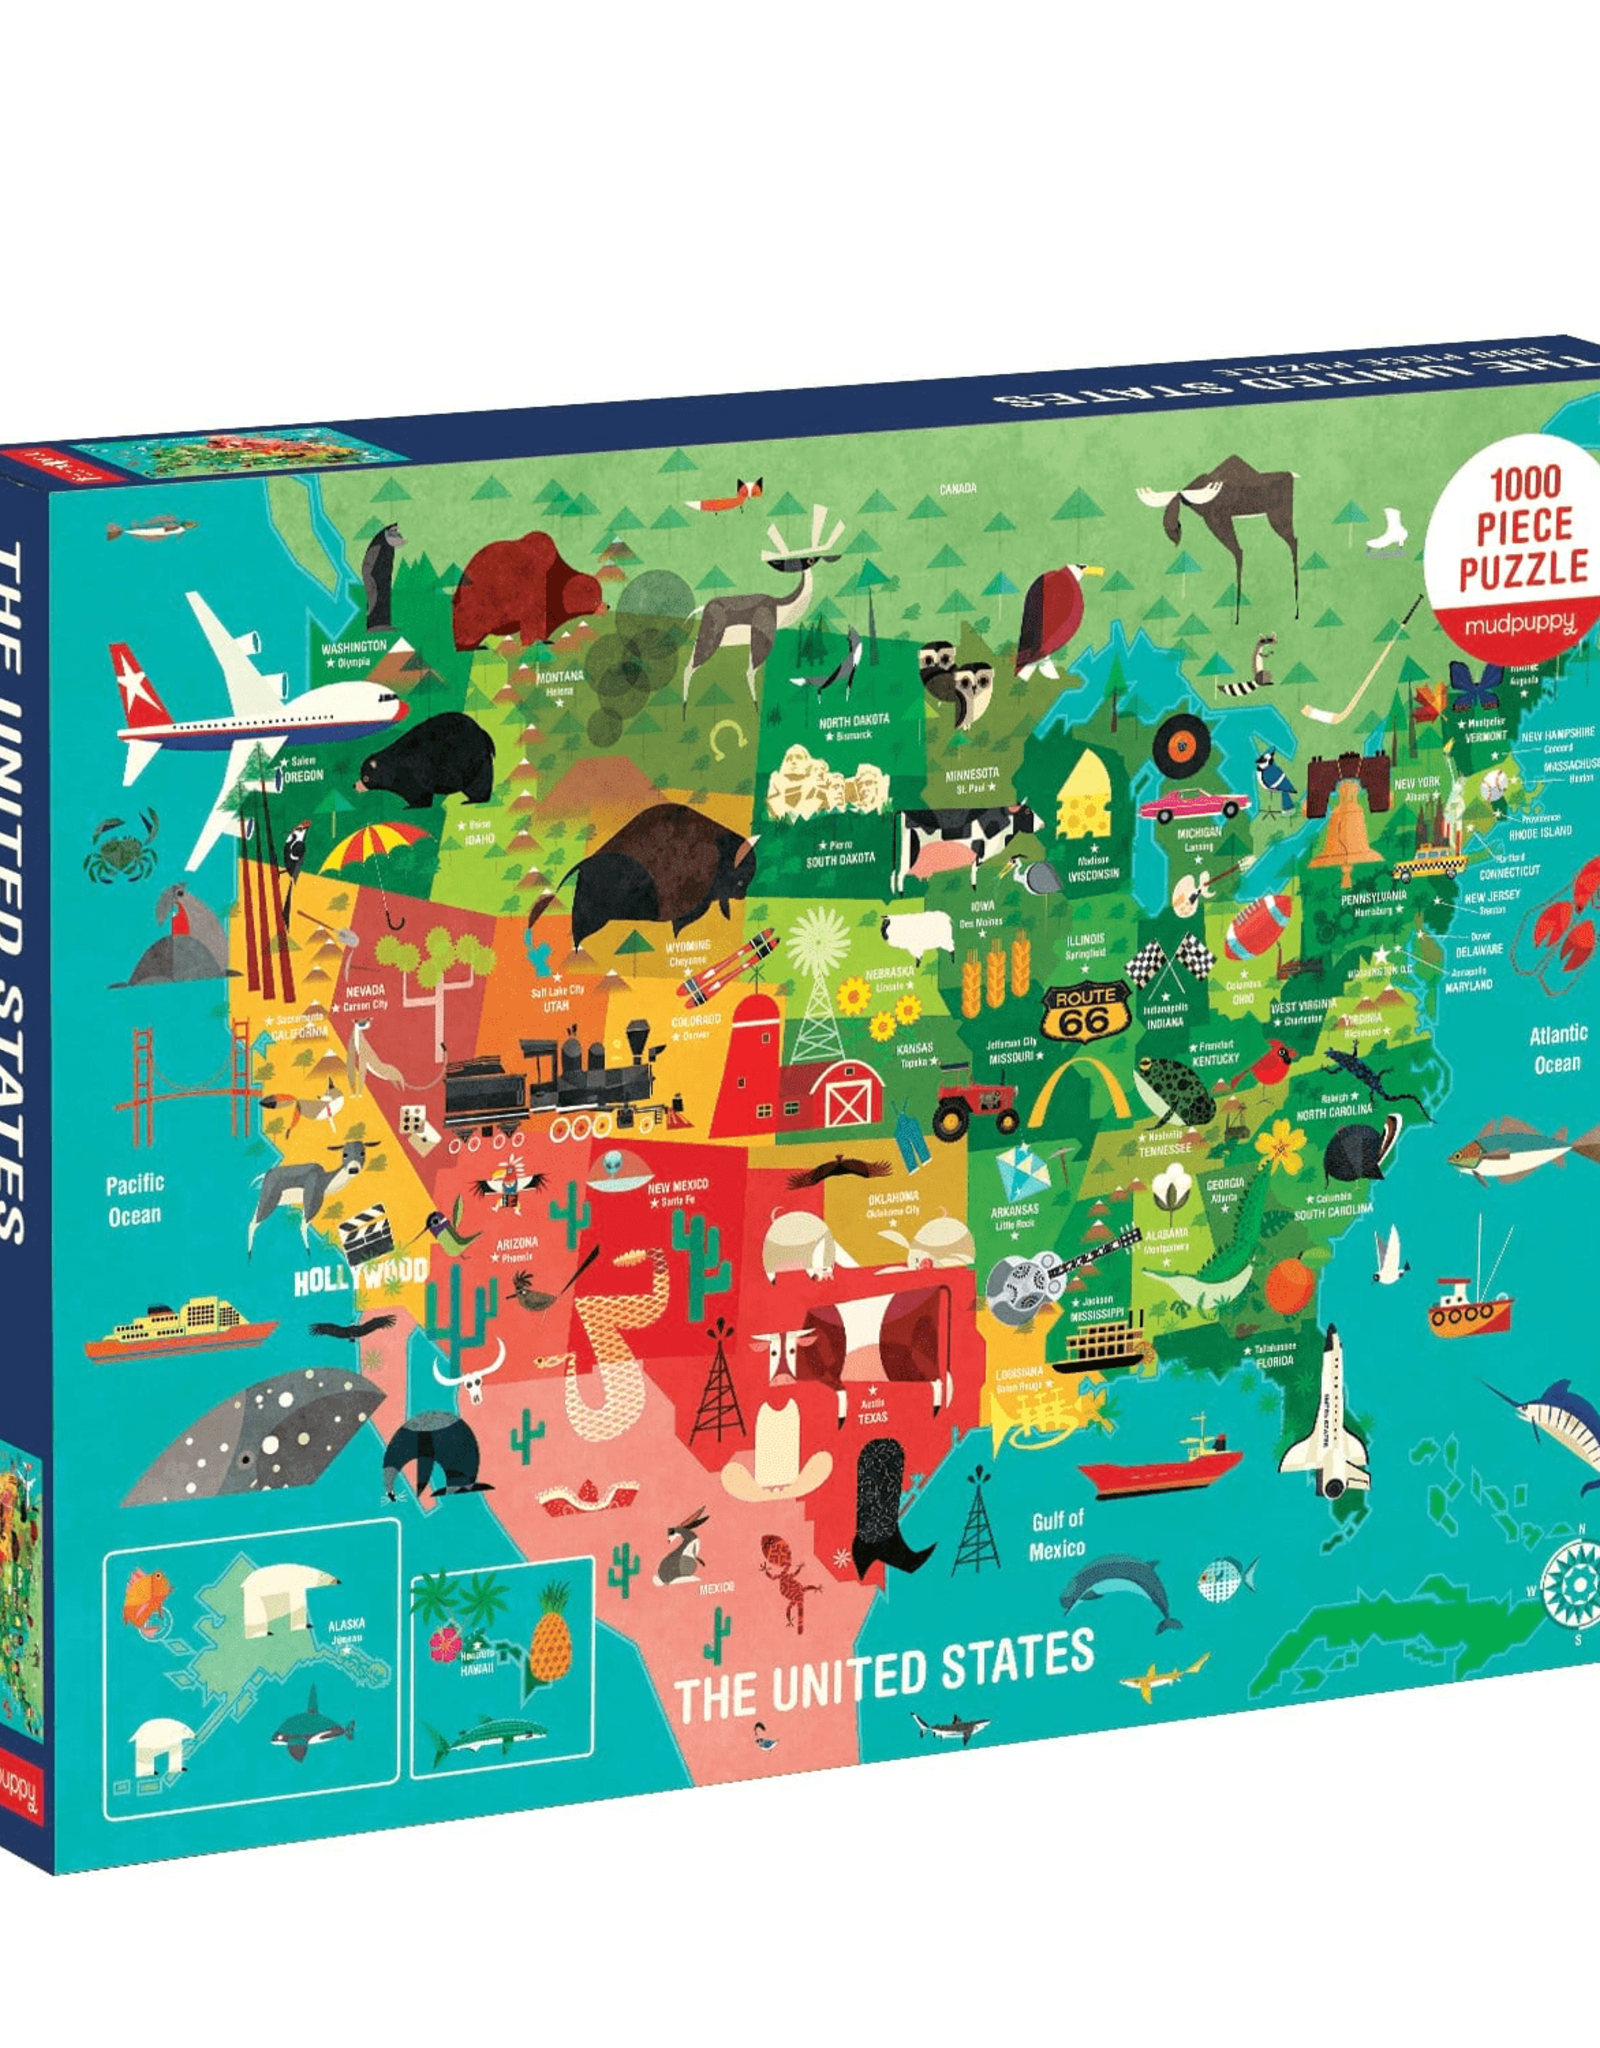 The United States 1000 piece Puzzle